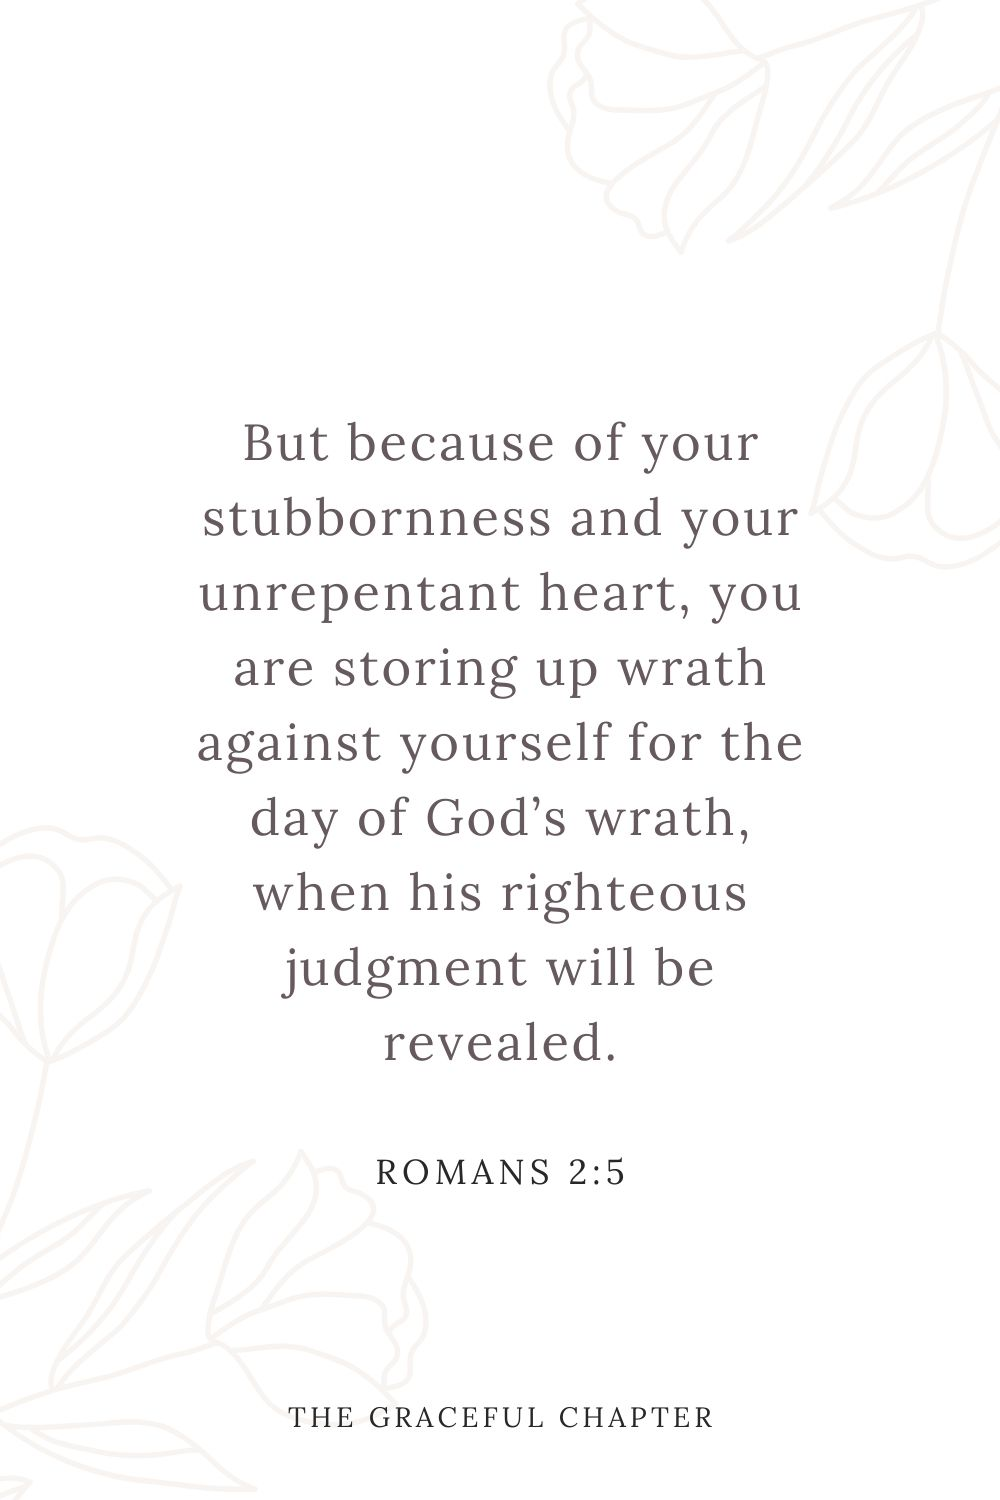 But because of your stubbornness and your unrepentant heart, you are storing up wrath against yourself for the day of God's wrath, when his righteous judgment will be revealed. Romans 2:5